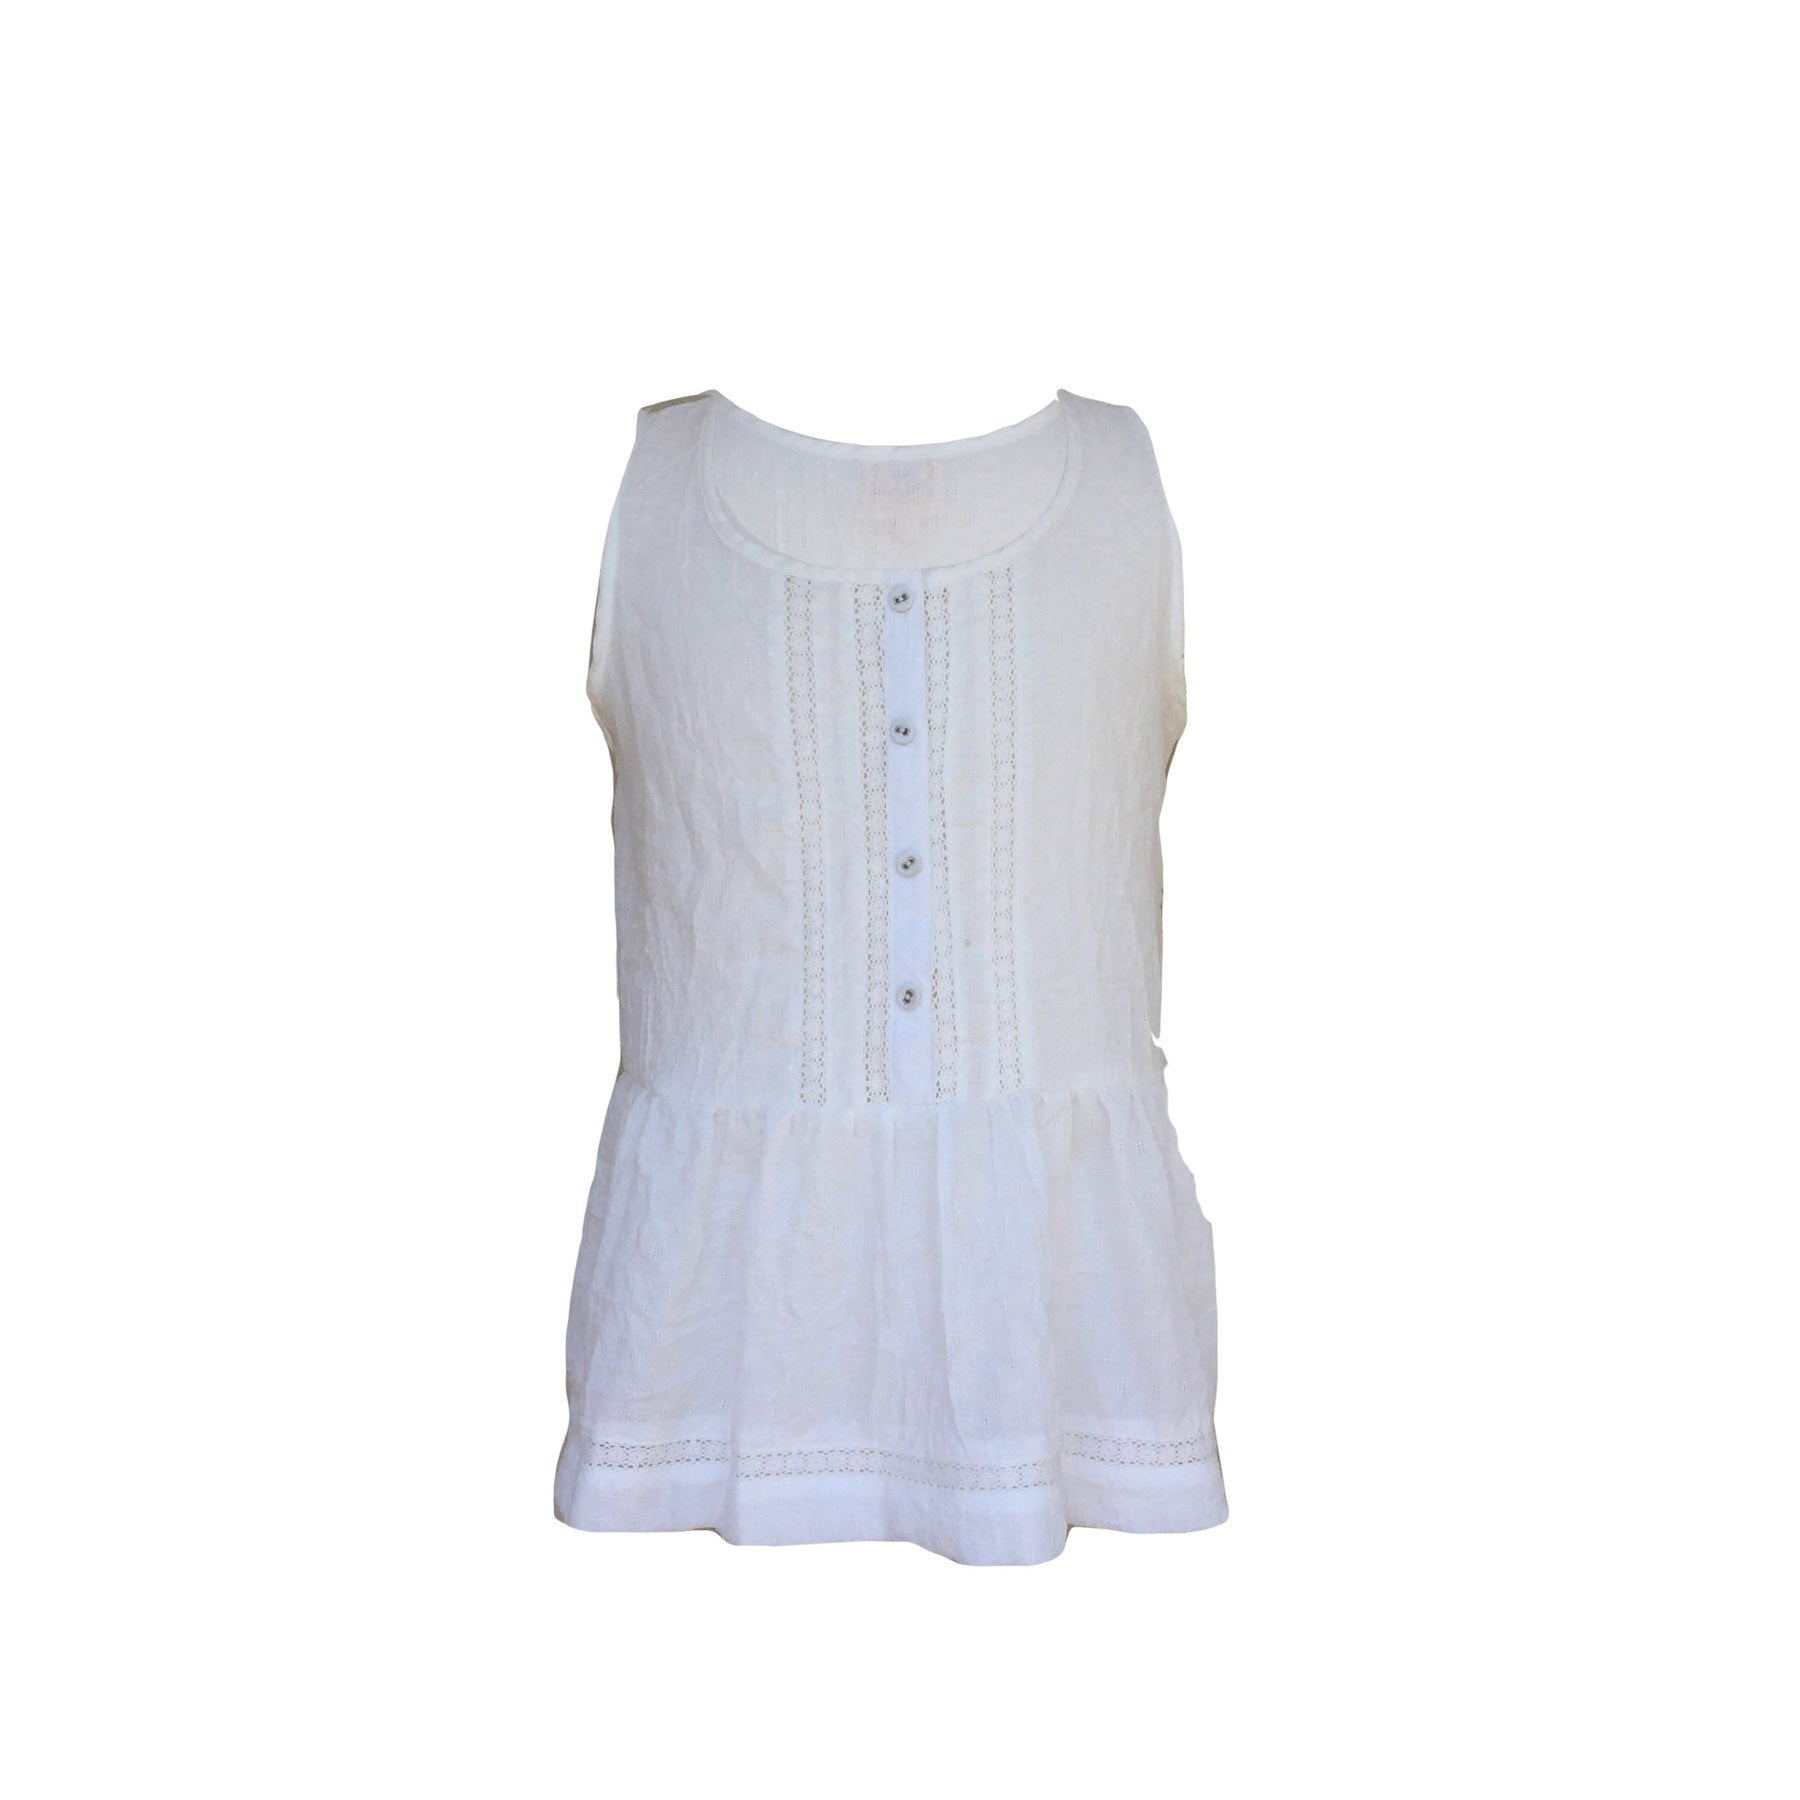 White Button-Up Top | Hayden LA (USA) - SIZE 13/14 ONLY